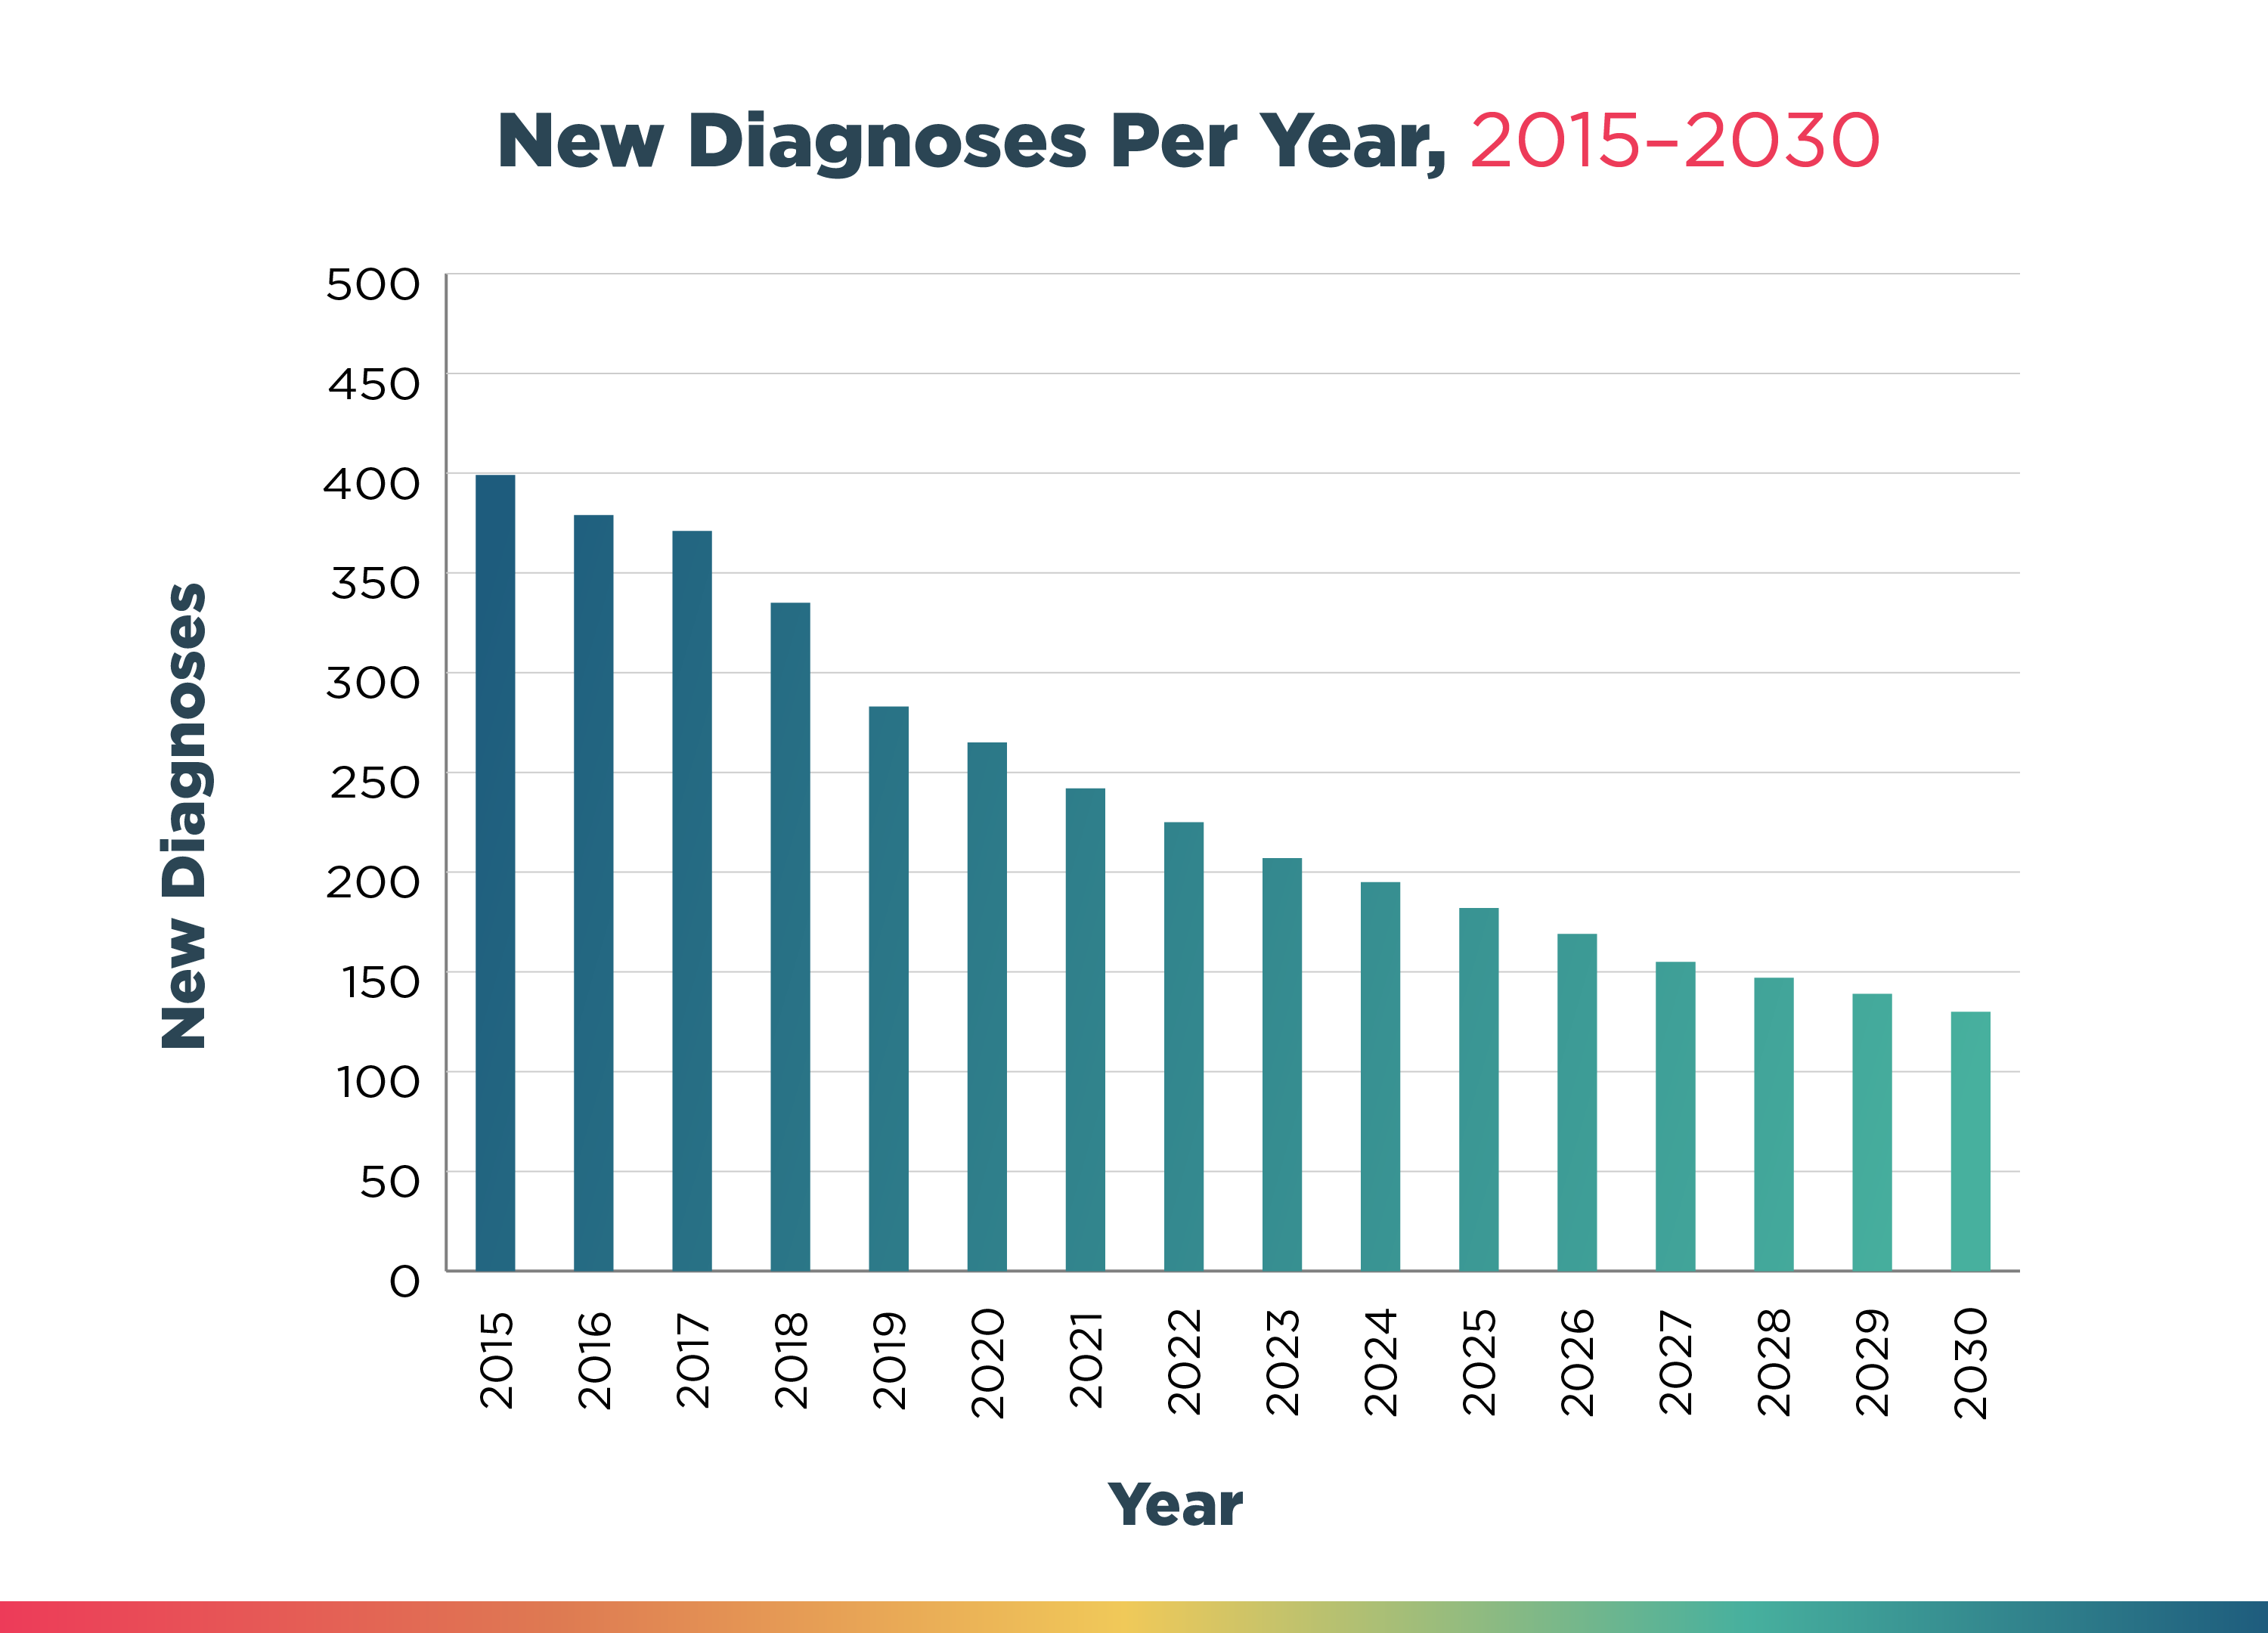 New Diagnoses Per Year, 2015-2030